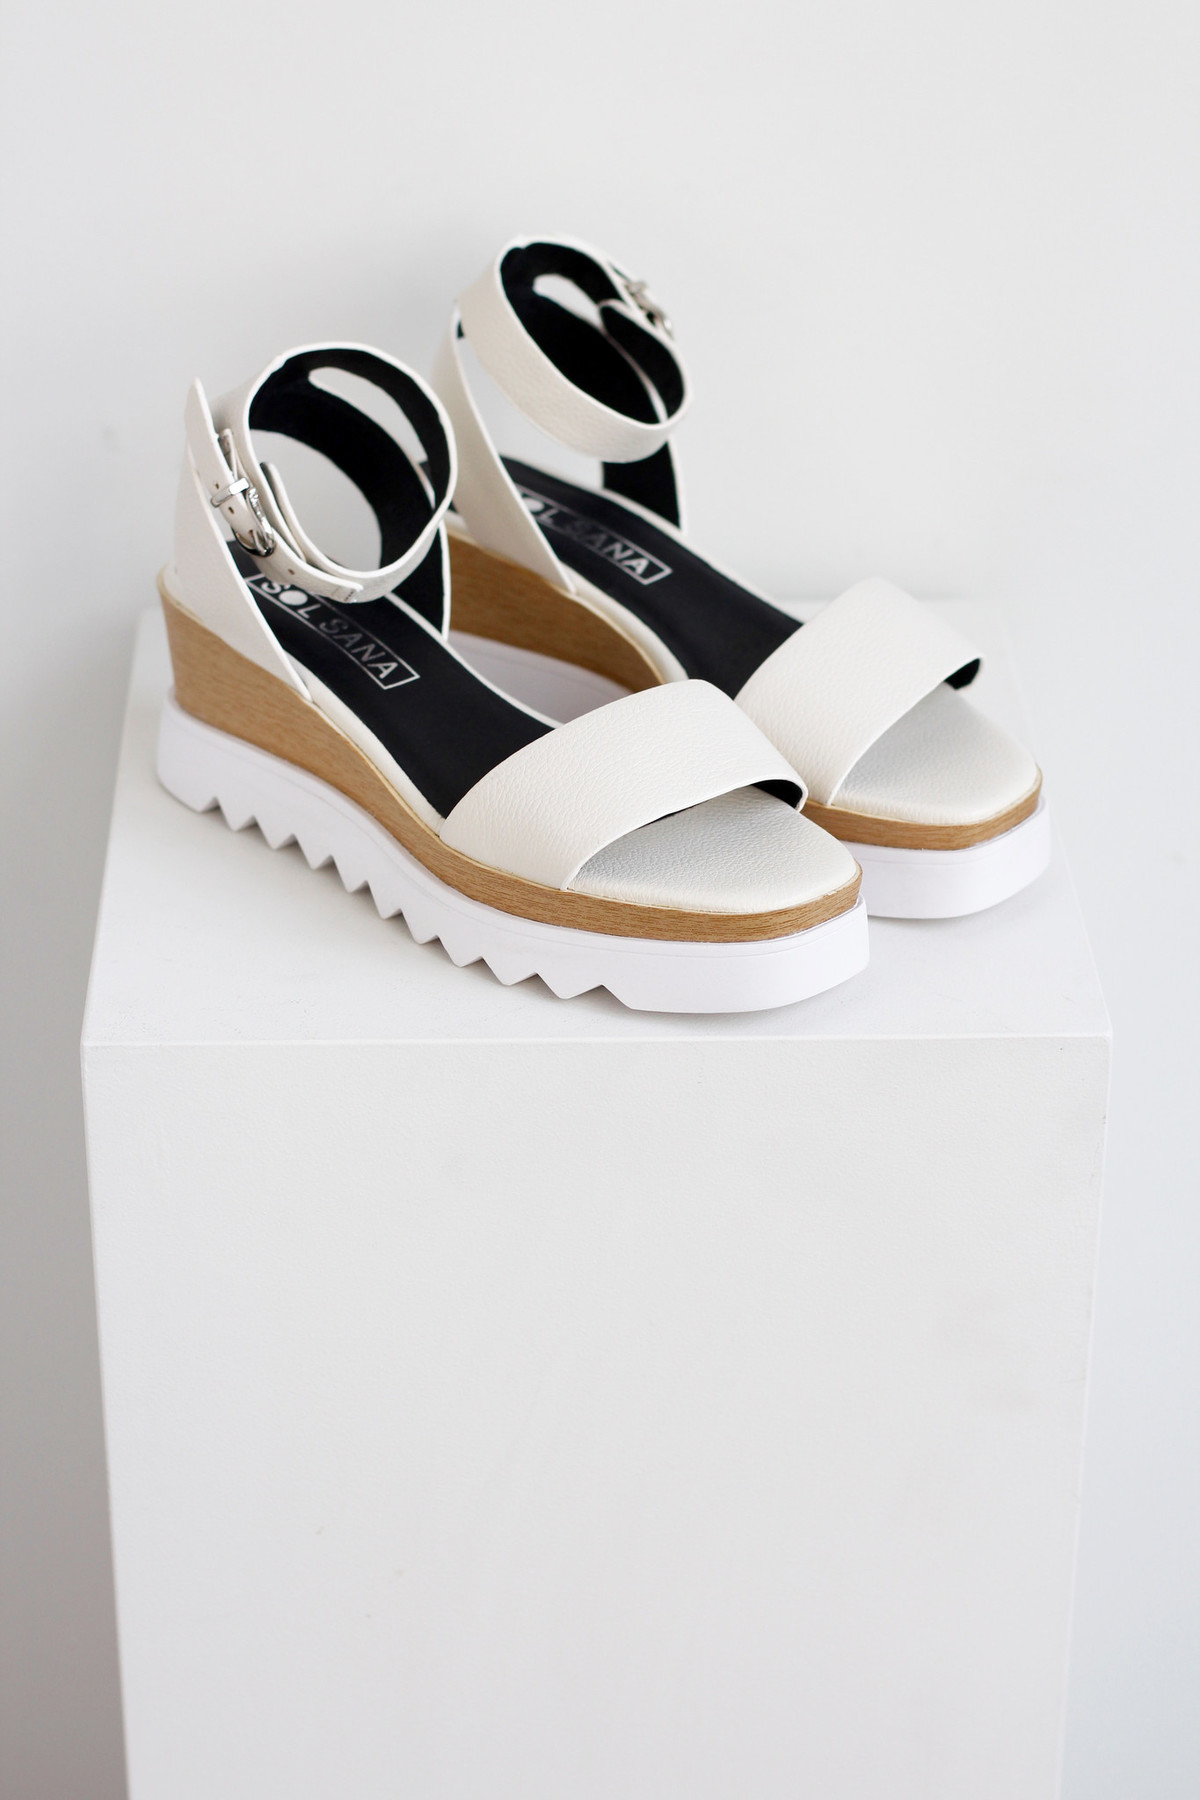 3f52a85e094 Sol Sana Tray wedge sandal in white